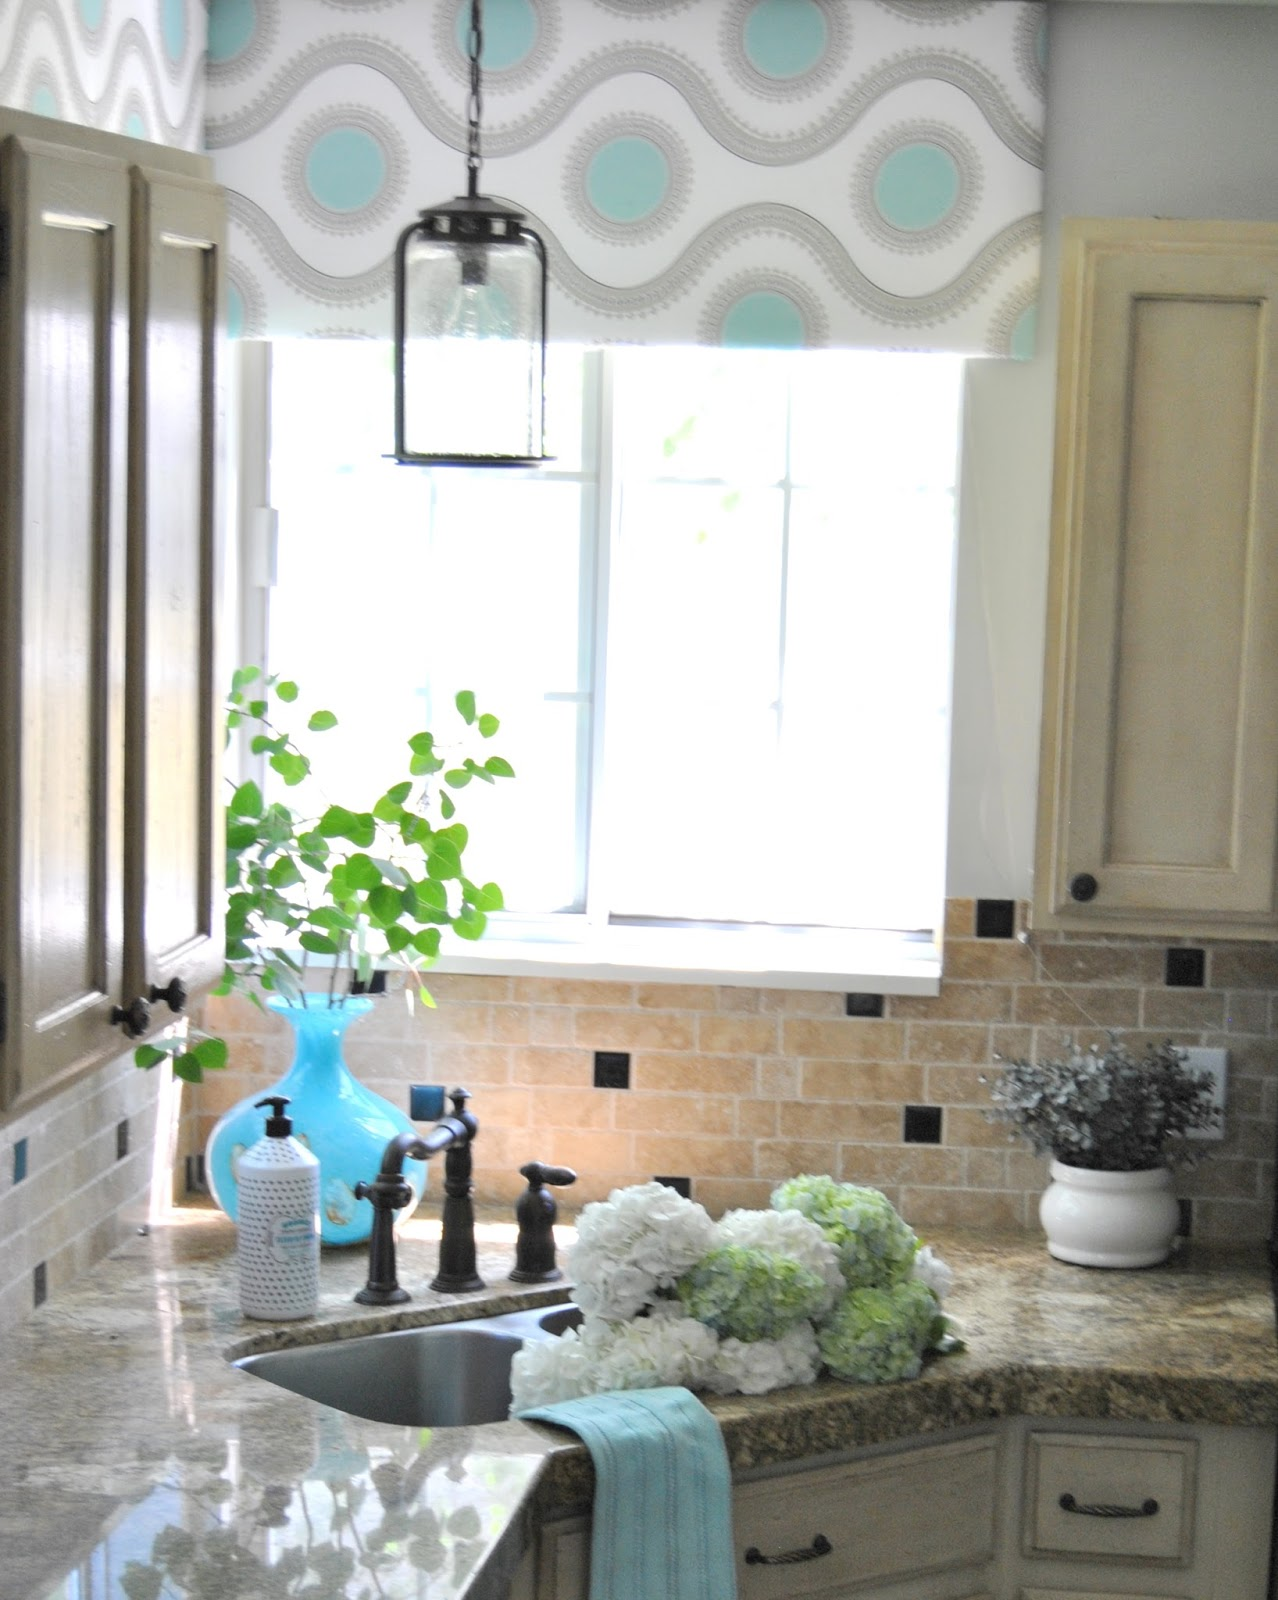 Studio 7 Interior Design: Kitchen Styling- A Little Goes a Long Way!